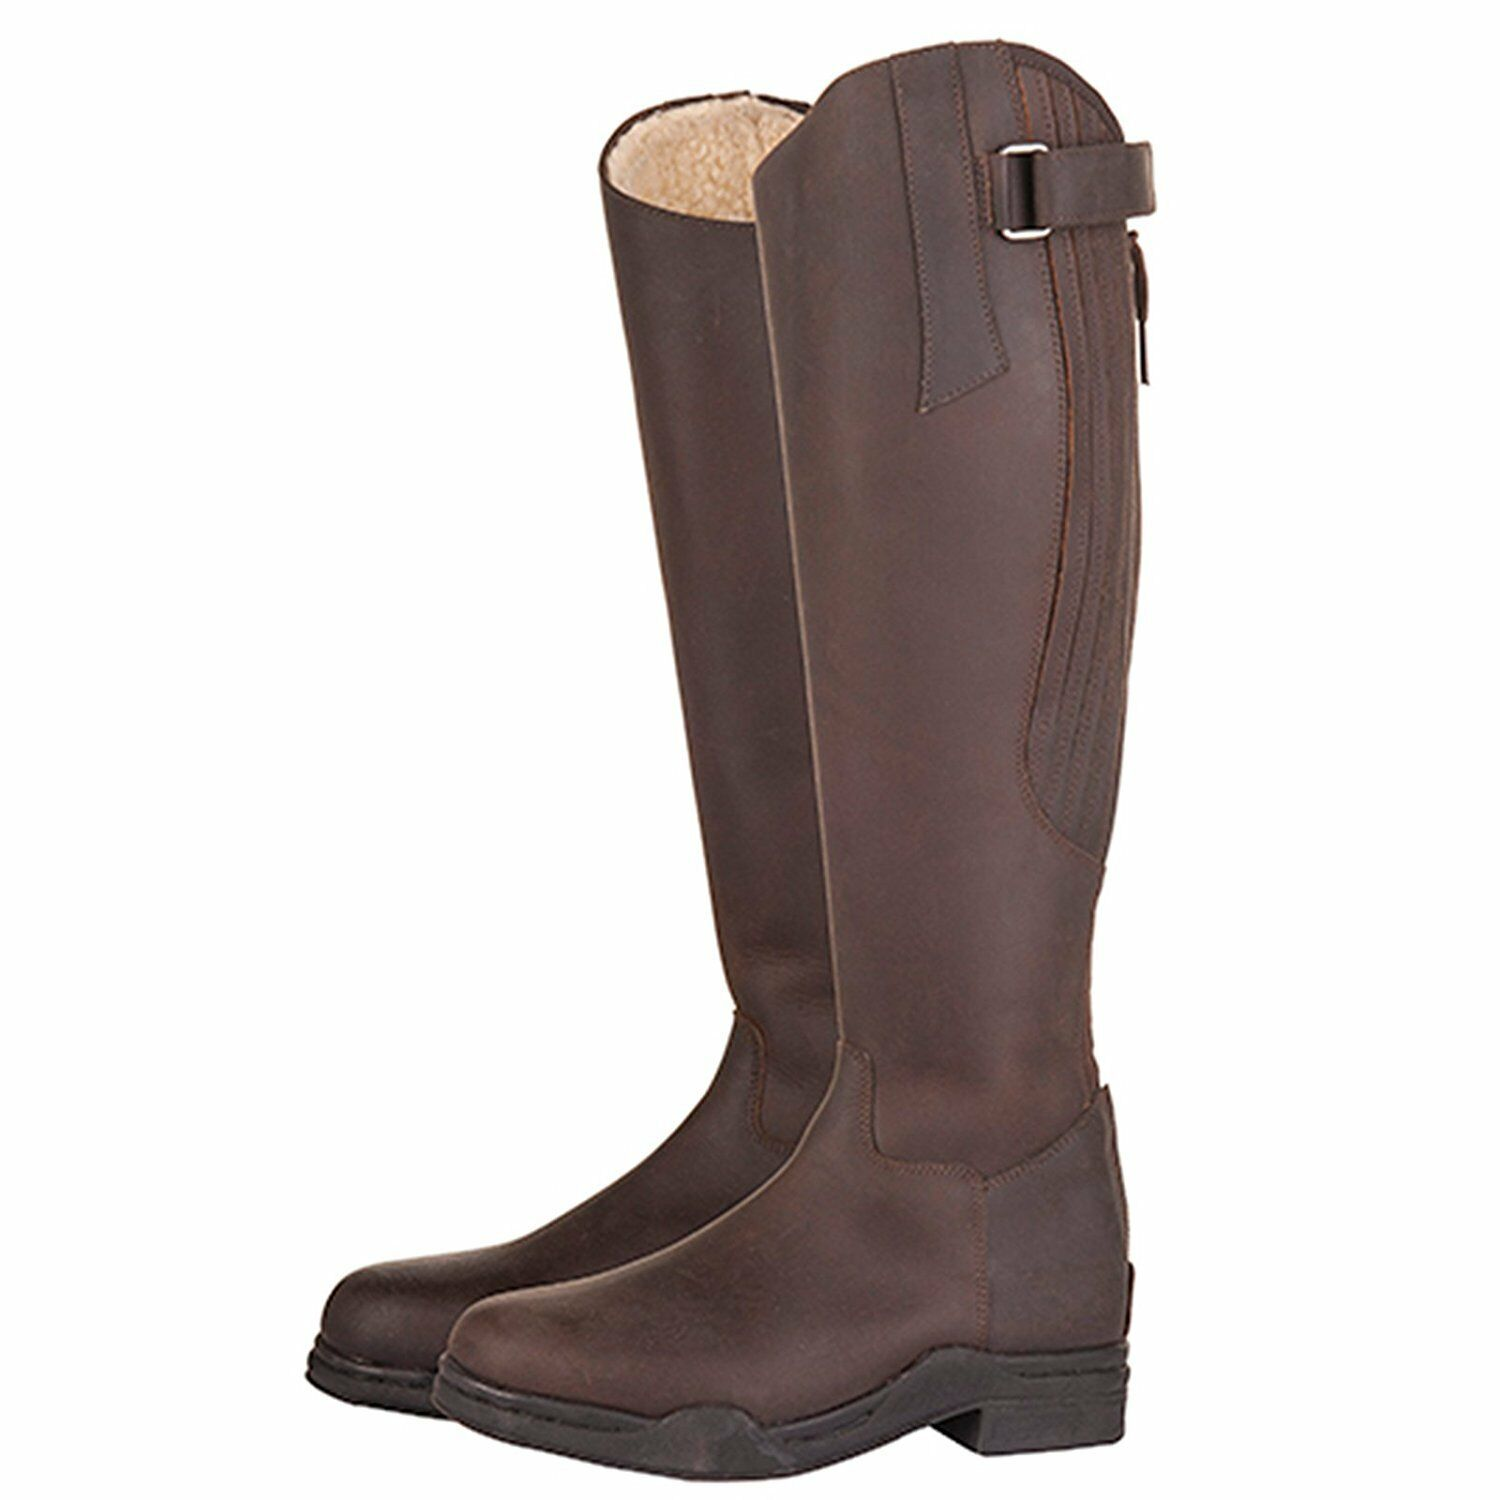 Mark Todd Tall Winter Fleece Lined Brown Riding Boots Size 41